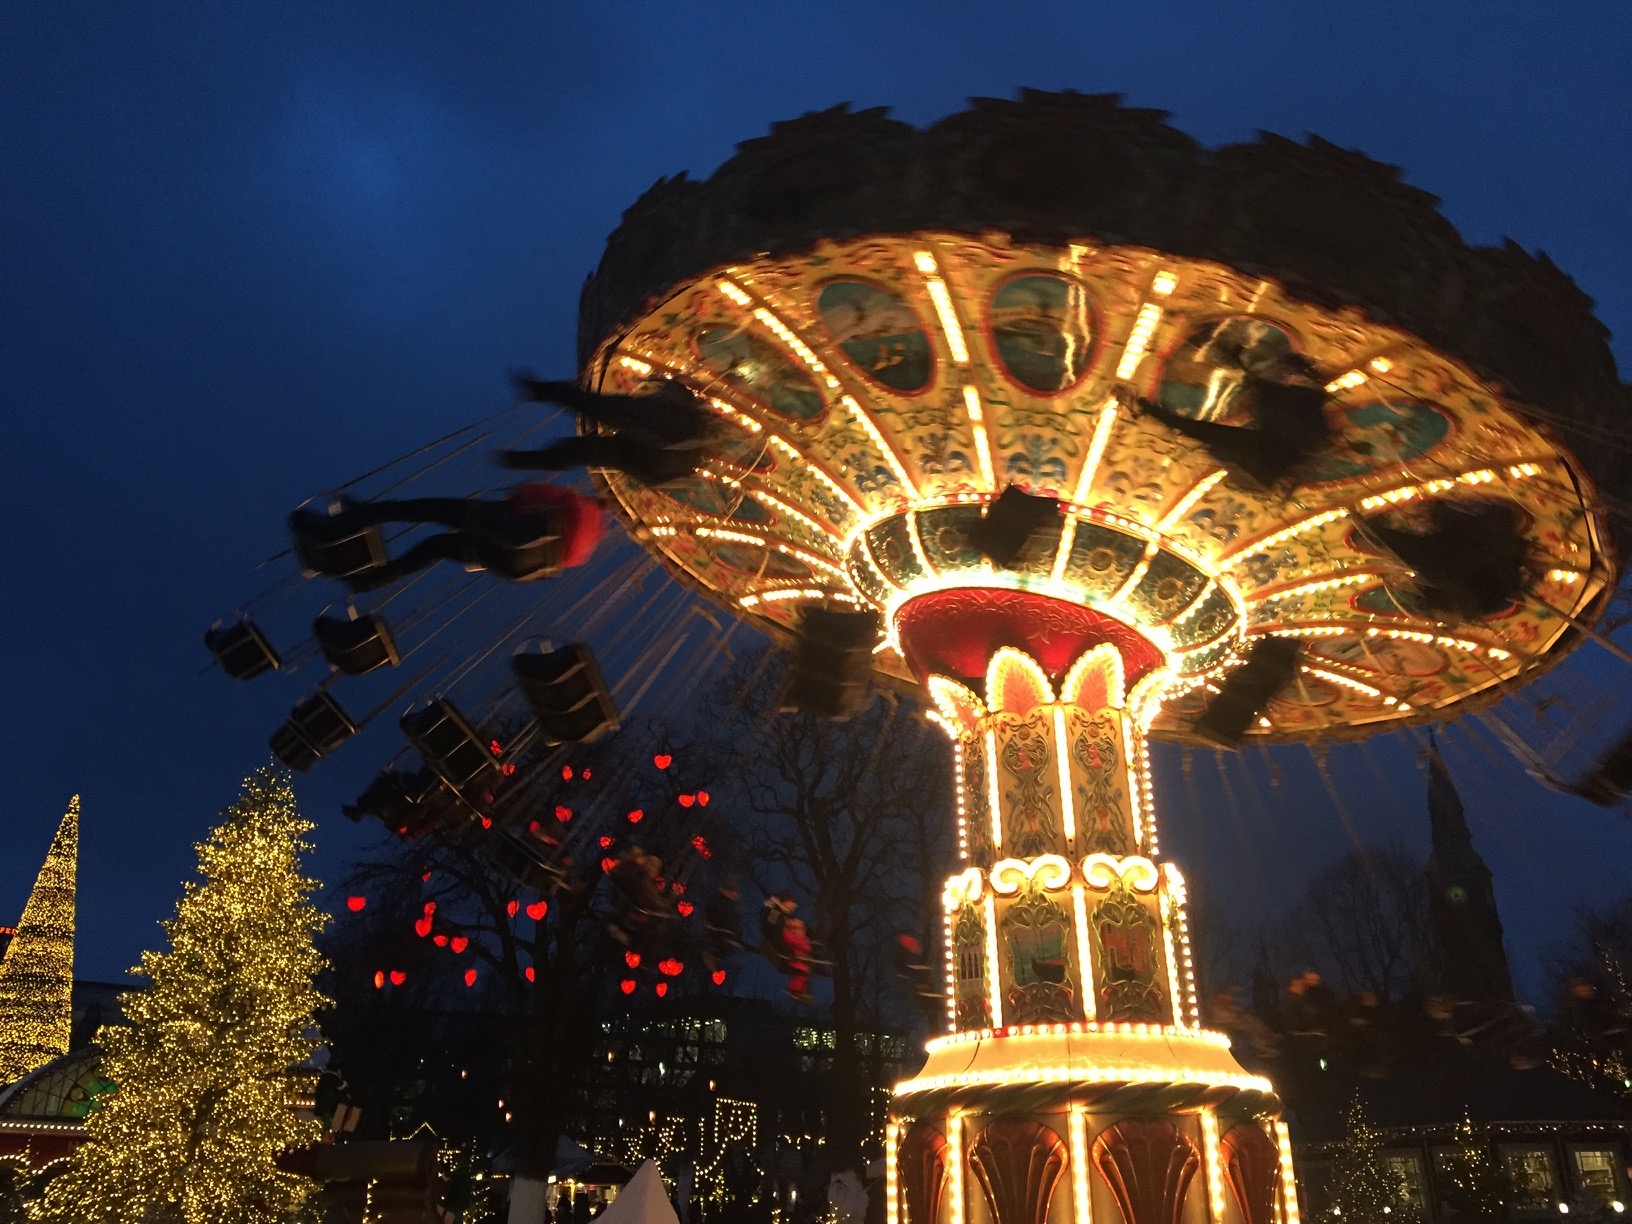 A brightly-lit swing carousel near an illuminated Christmas tree before a dark sky.